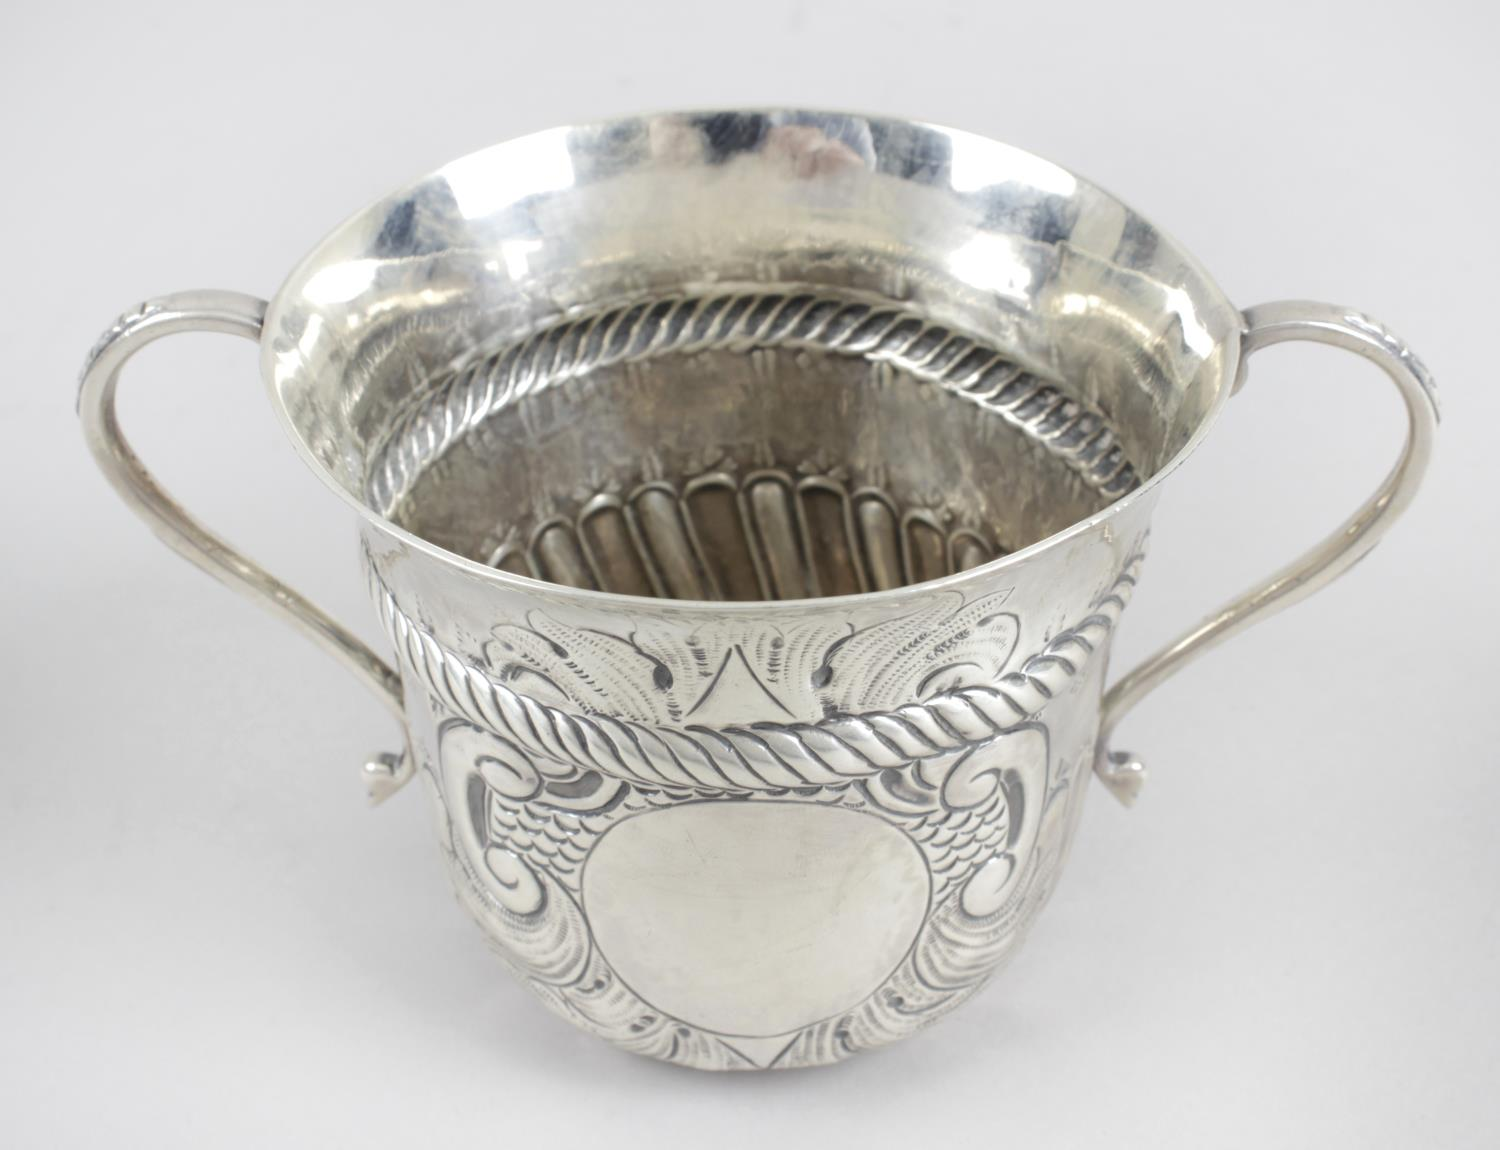 Lot 28 - An Edwardian silver cup of cylindrical form with flared rim and twin curved handles,